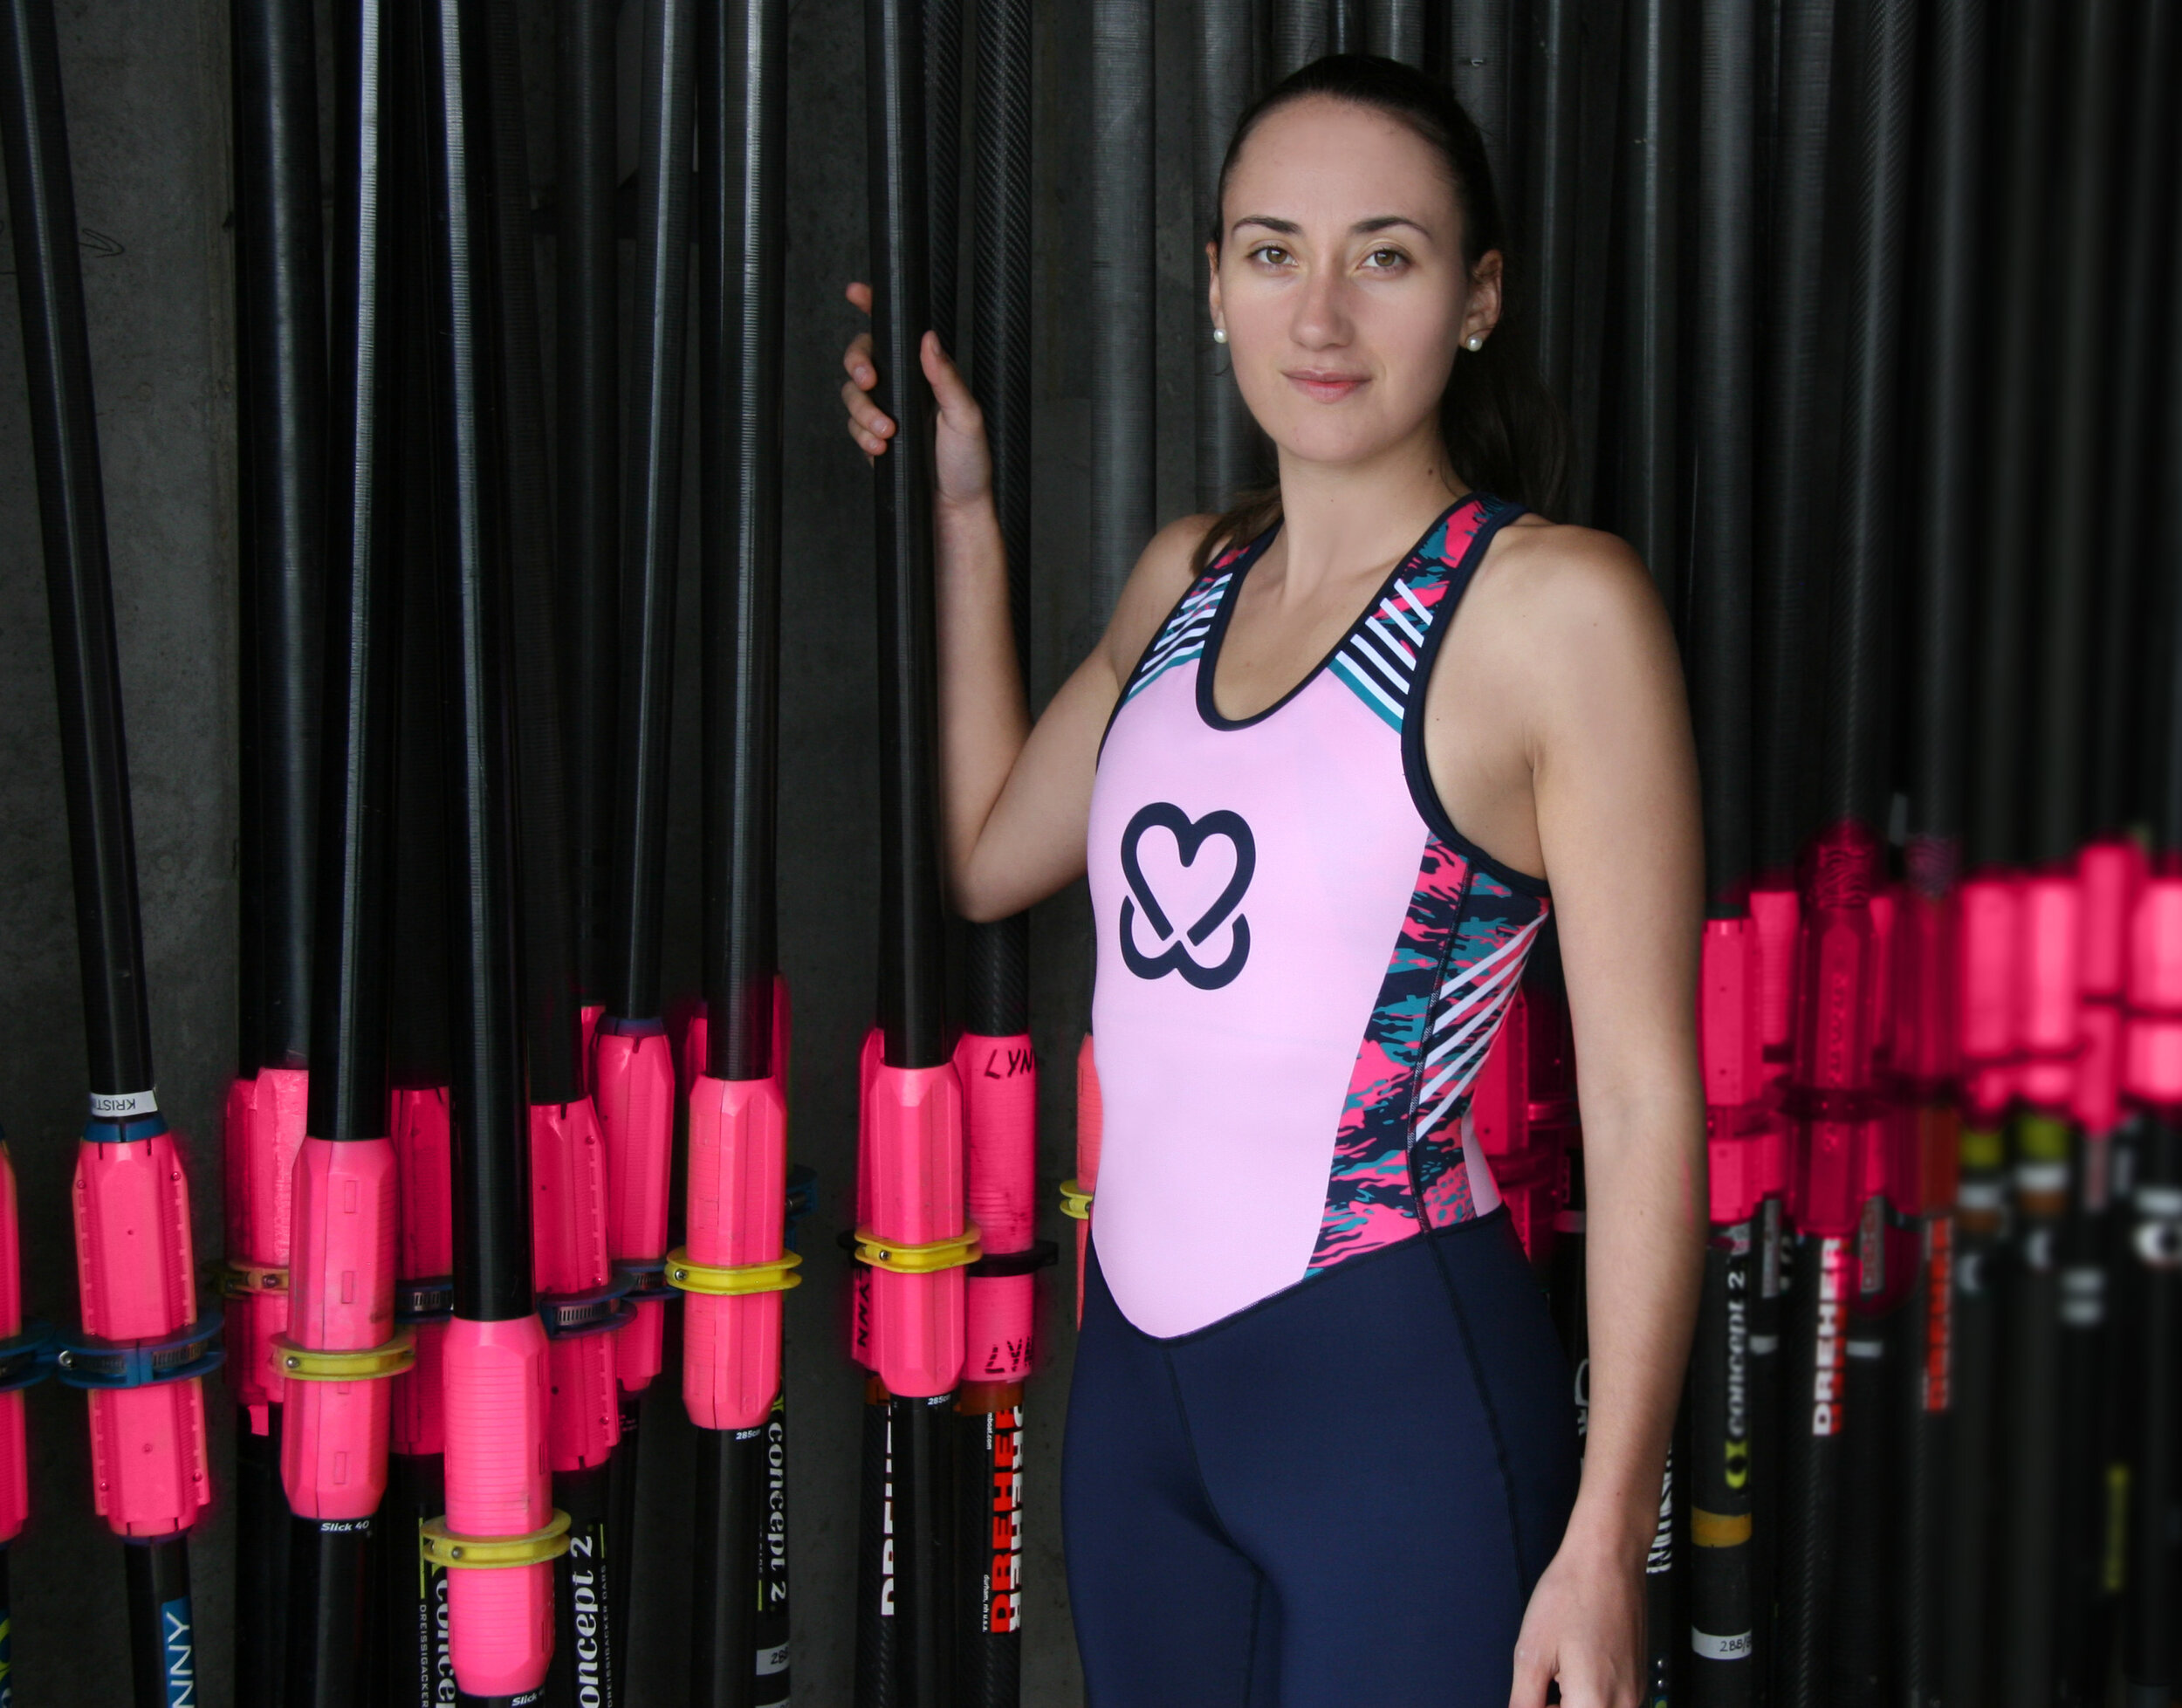 Boathouse - 20% of retail sales from limited edition Boathouse Breast Cancer collection benefits KAB, with a minimum donation of $2.5K.